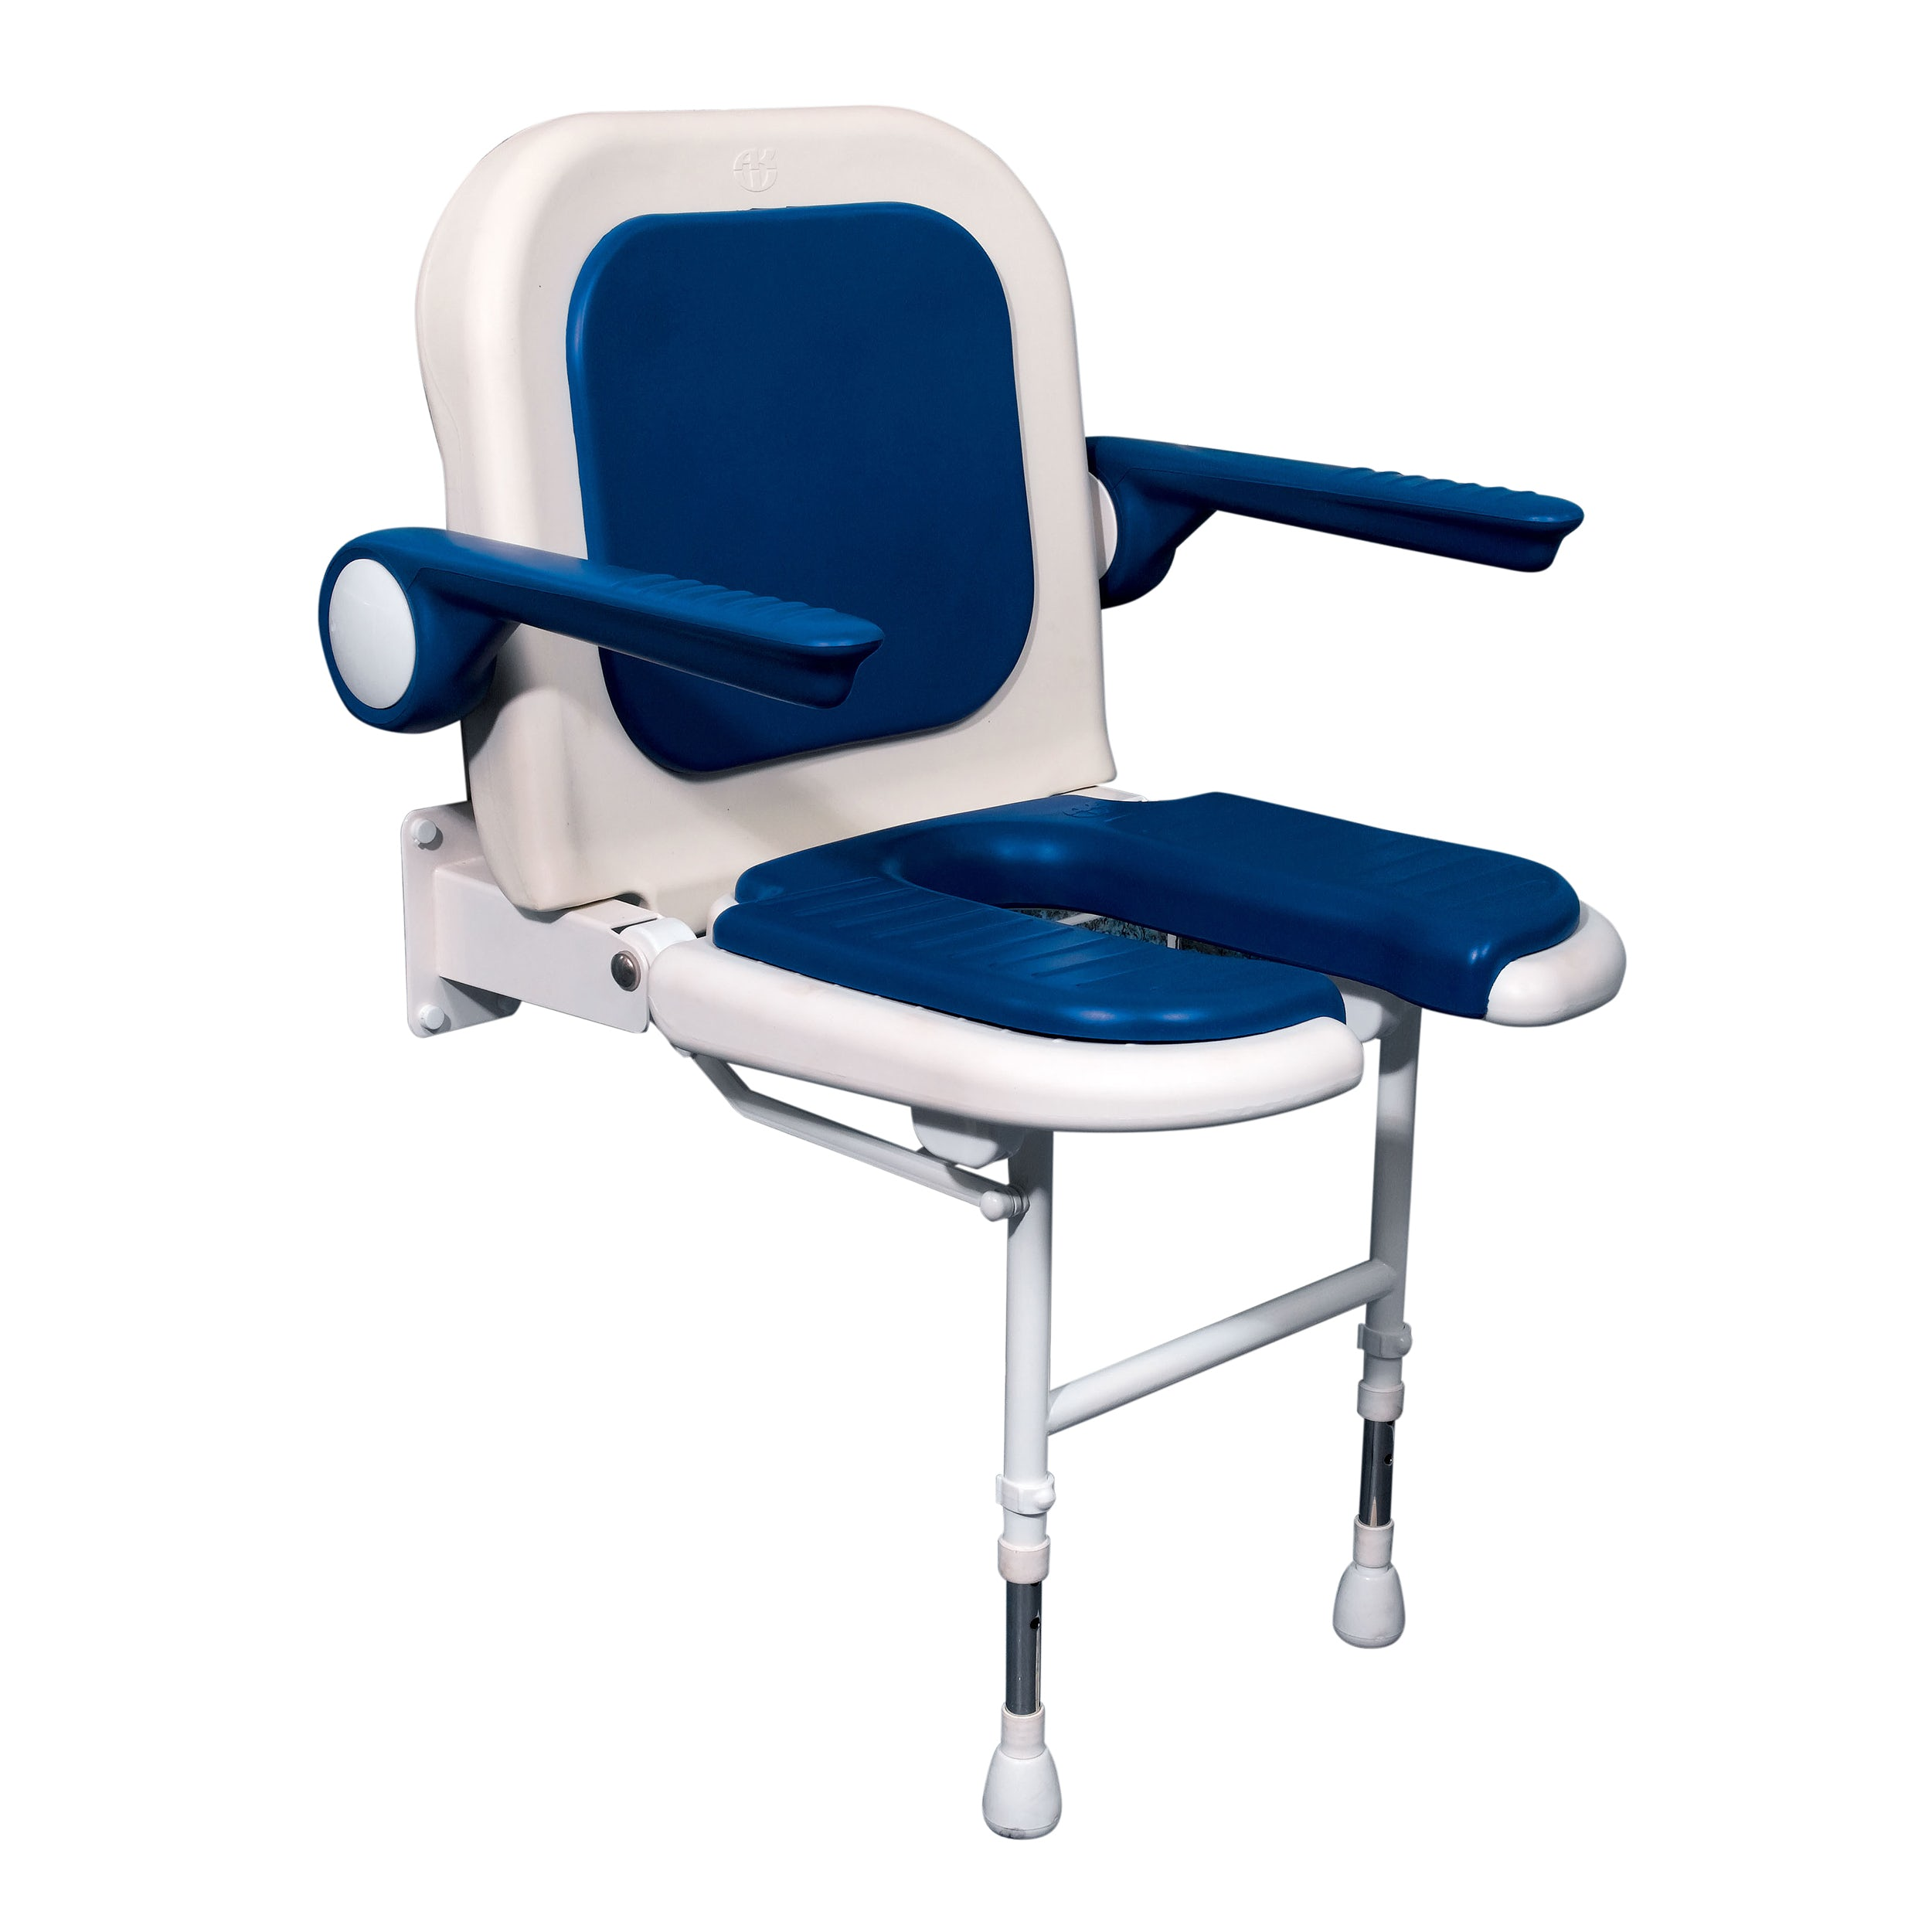 AKW Advanced folding shower seat with moulded seat and full padding blue - Sold by Victoria Plum